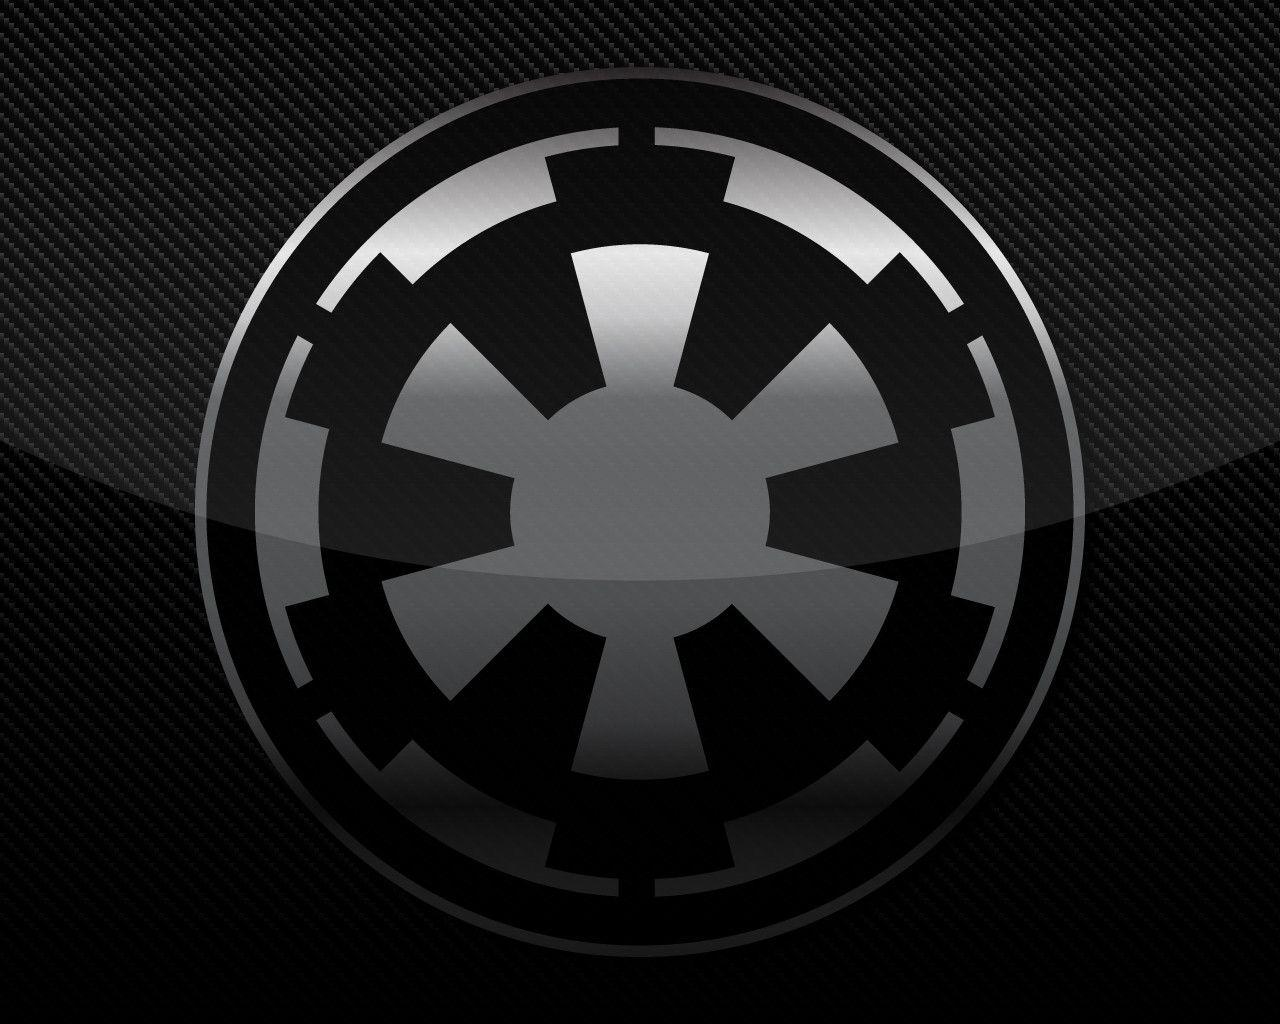 Star Wars Galactic Empire : star wars logo wallpapers wallpaper cave ~ Russianpoet.info Haus und Dekorationen